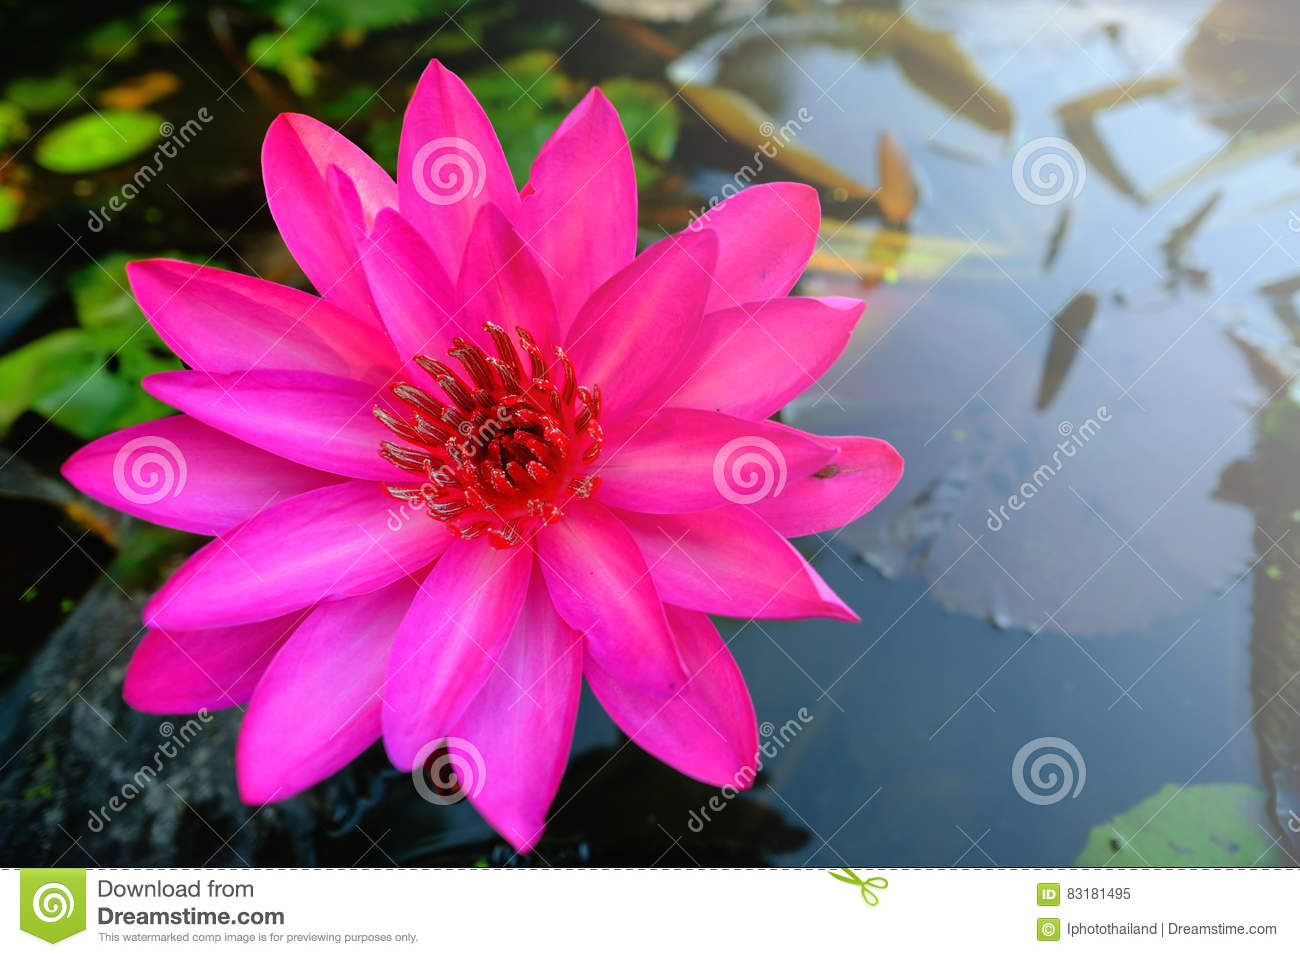 Pink lotus flower blooming on the water in garden stock image top view of beautiful pink water lily or pink lotus flower blooming on the water in gardenthailand selective focus with blurred background izmirmasajfo